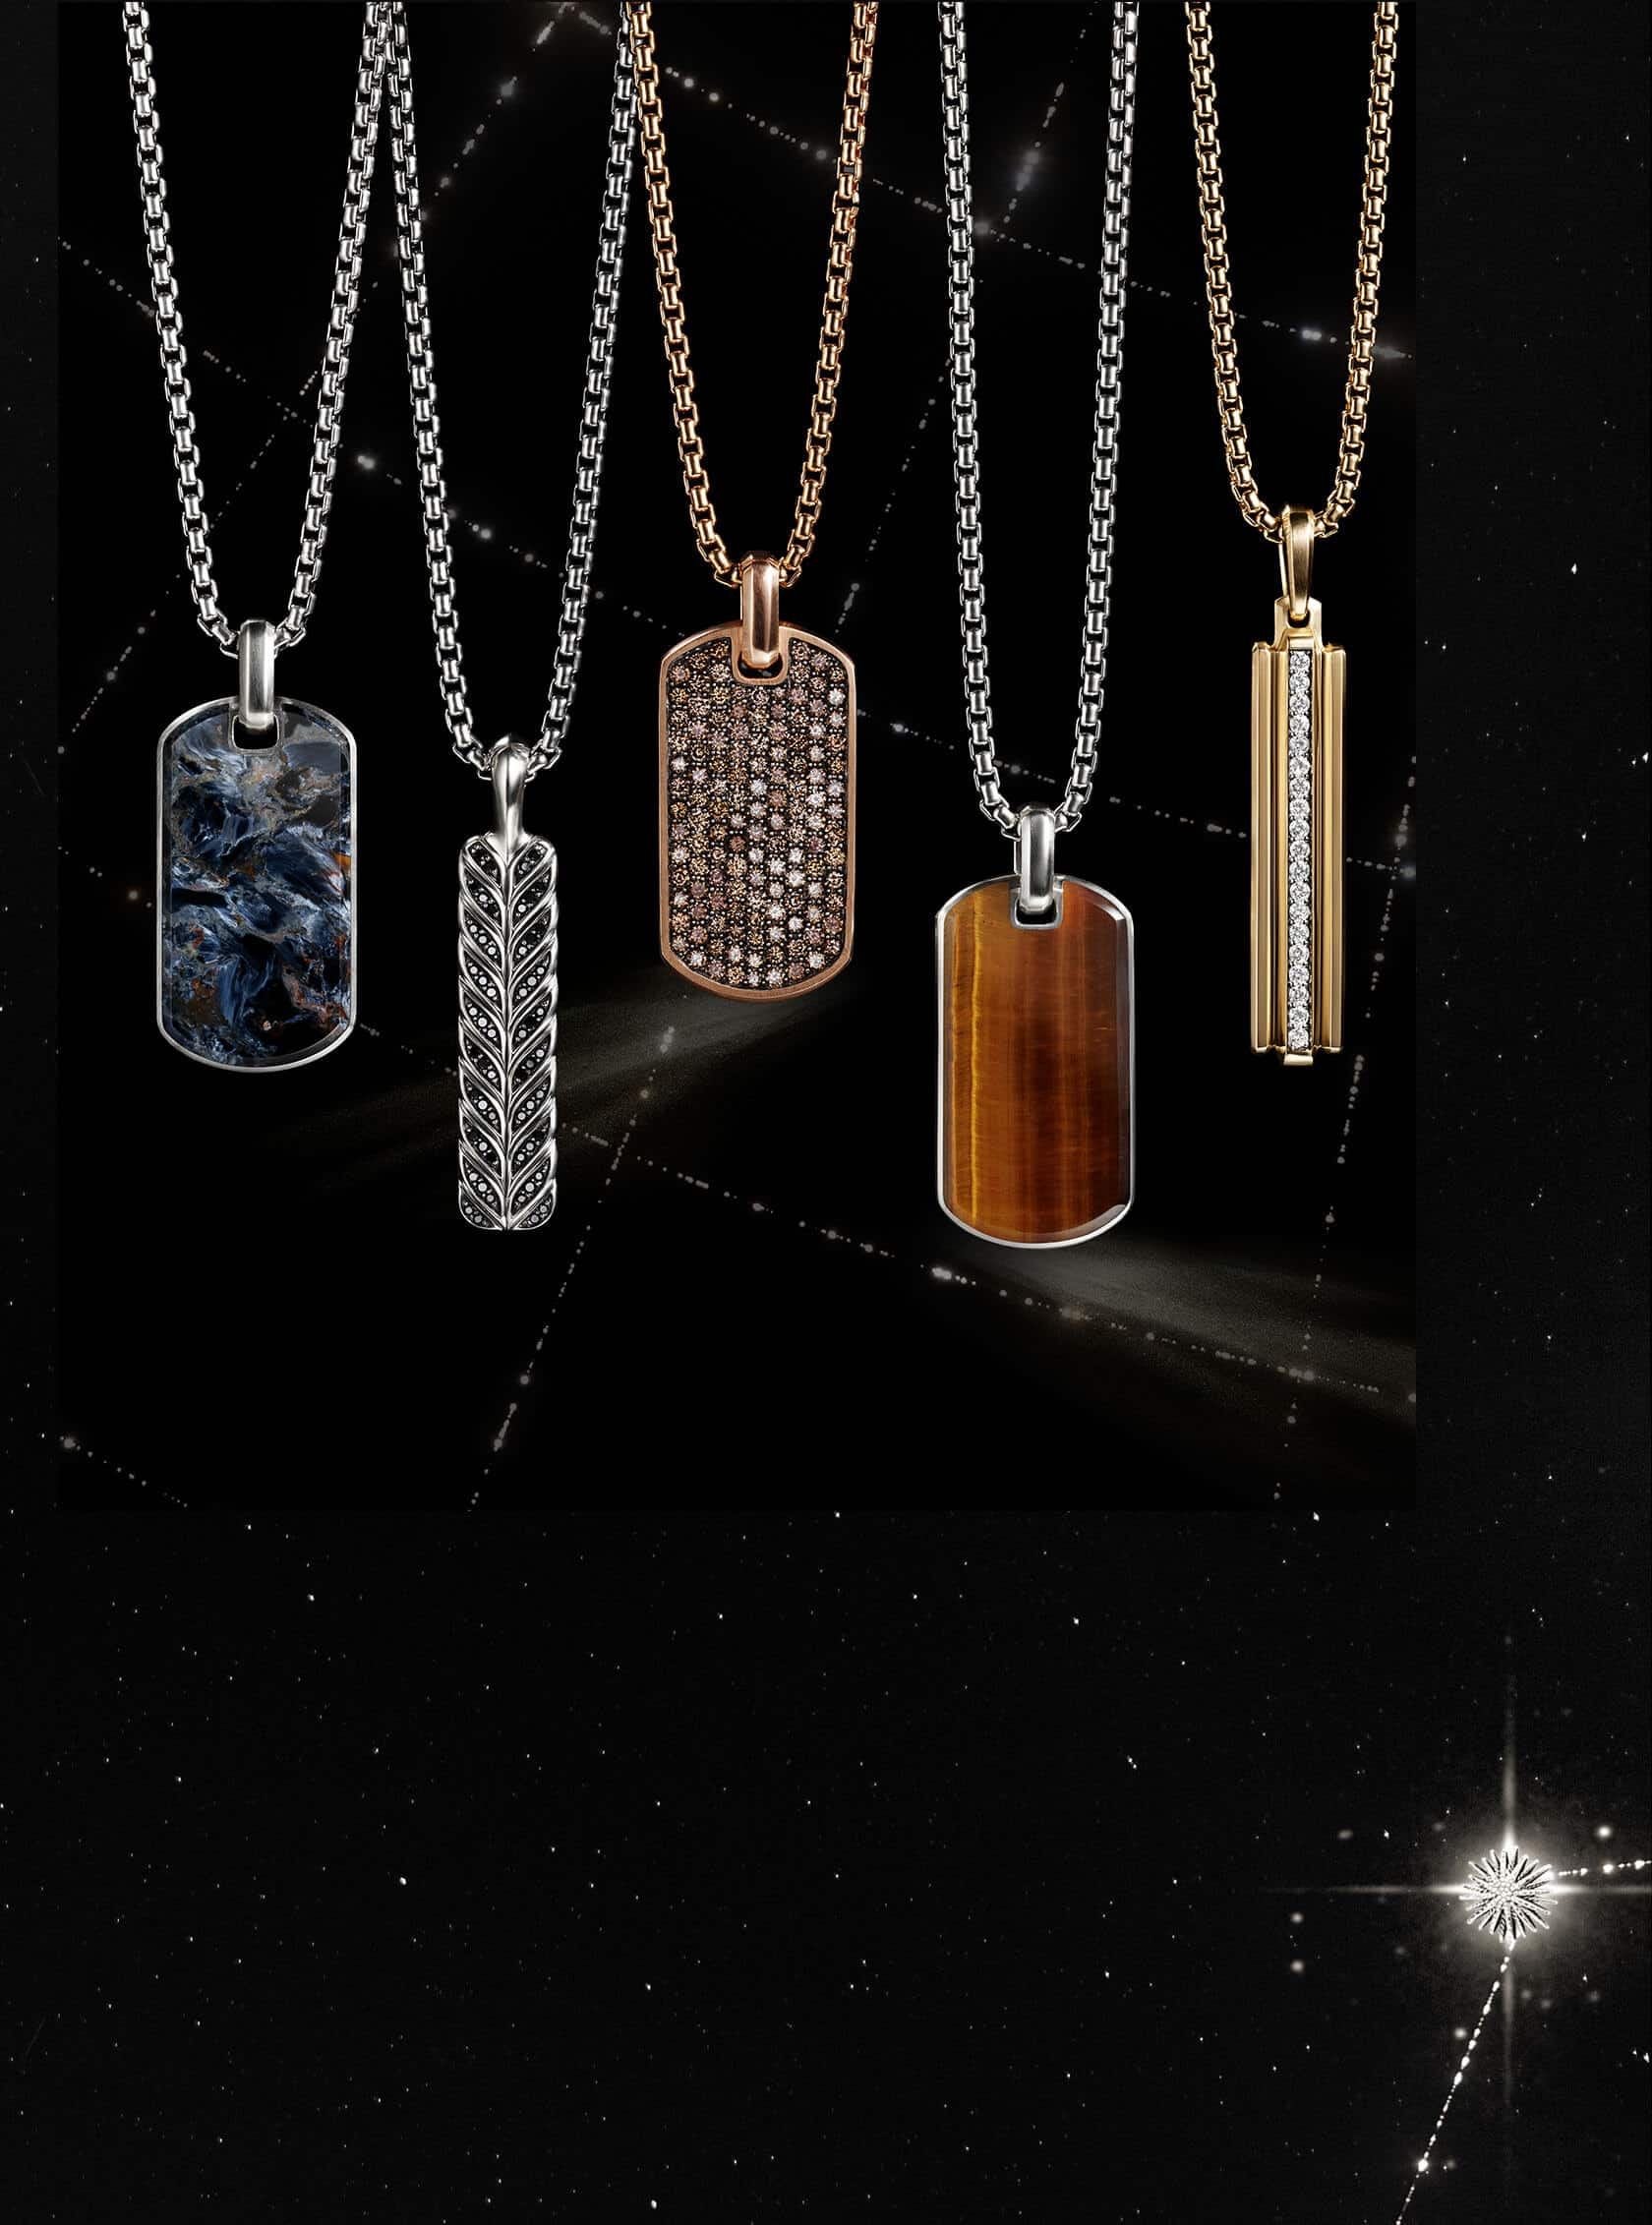 A color photograph shows five David Yurman men's tags strung on box chains hanging in front of a black-and-white background with latitude and longitude lines. Three of the tags are crafted from sterling silver with pietersite, black diamonds or tiger's eye. One tag is crafted from 18K rose gold with cognac diamonds. The final tag is crafted from 18K yellow gold with white diamonds.